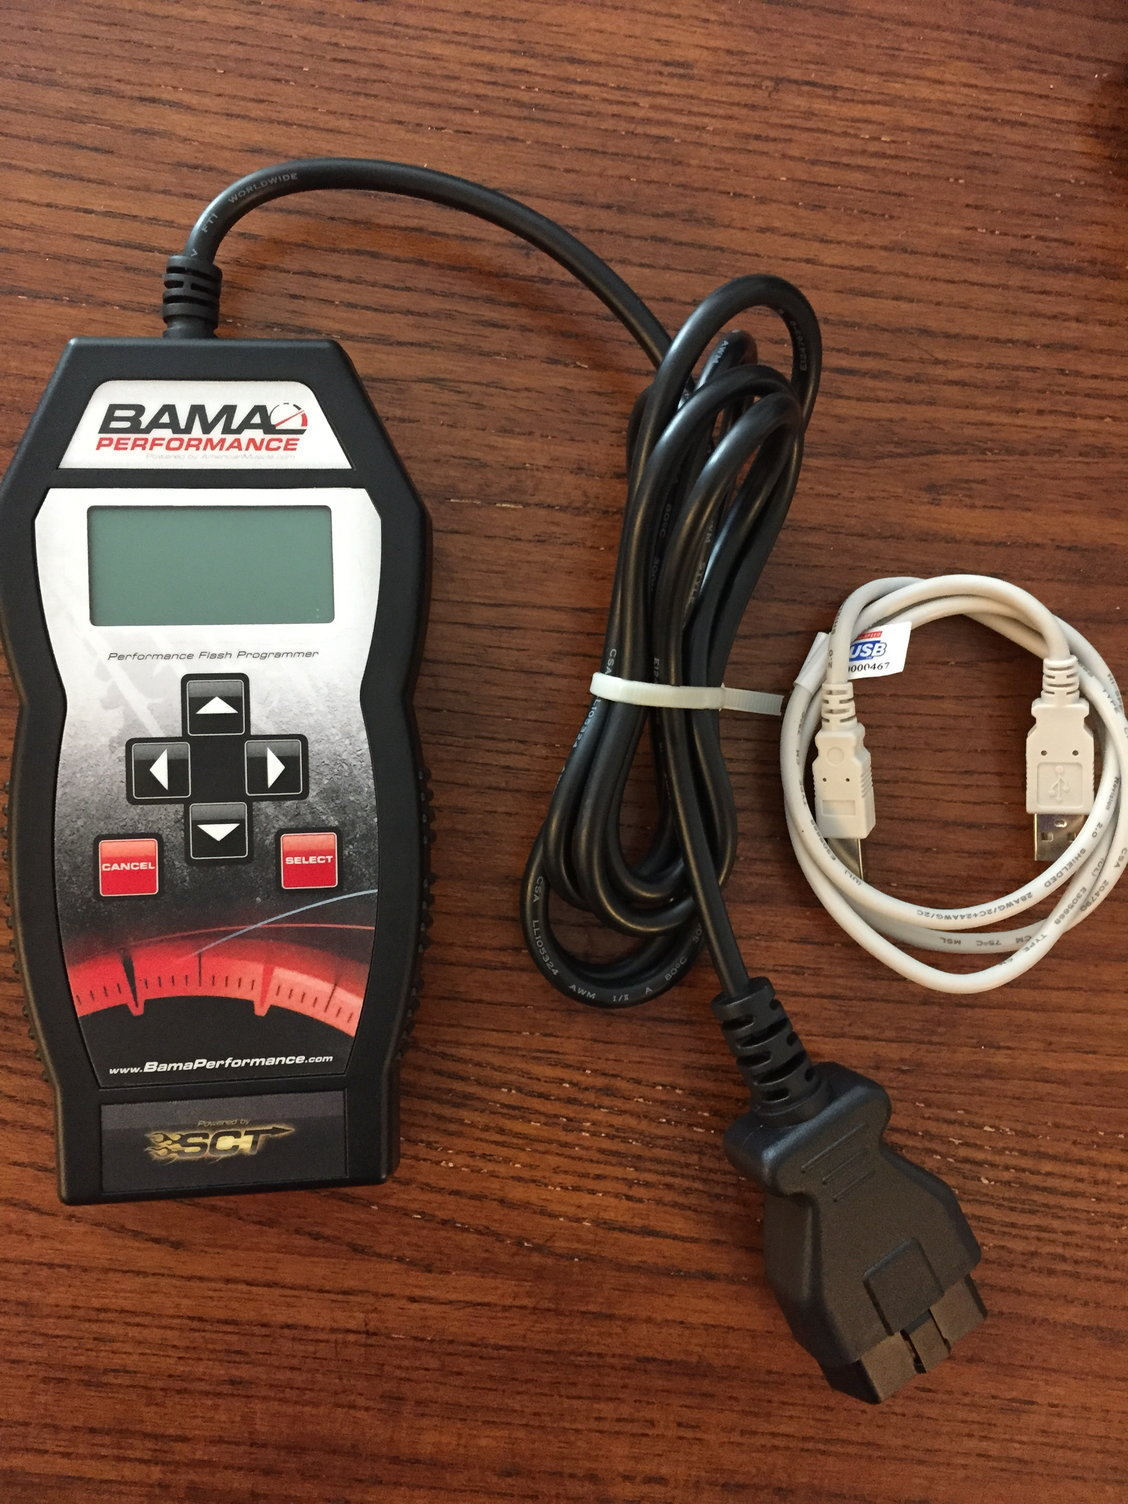 FS: Bama SF3 Tuner off of 2013 Mustang GT - The Mustang